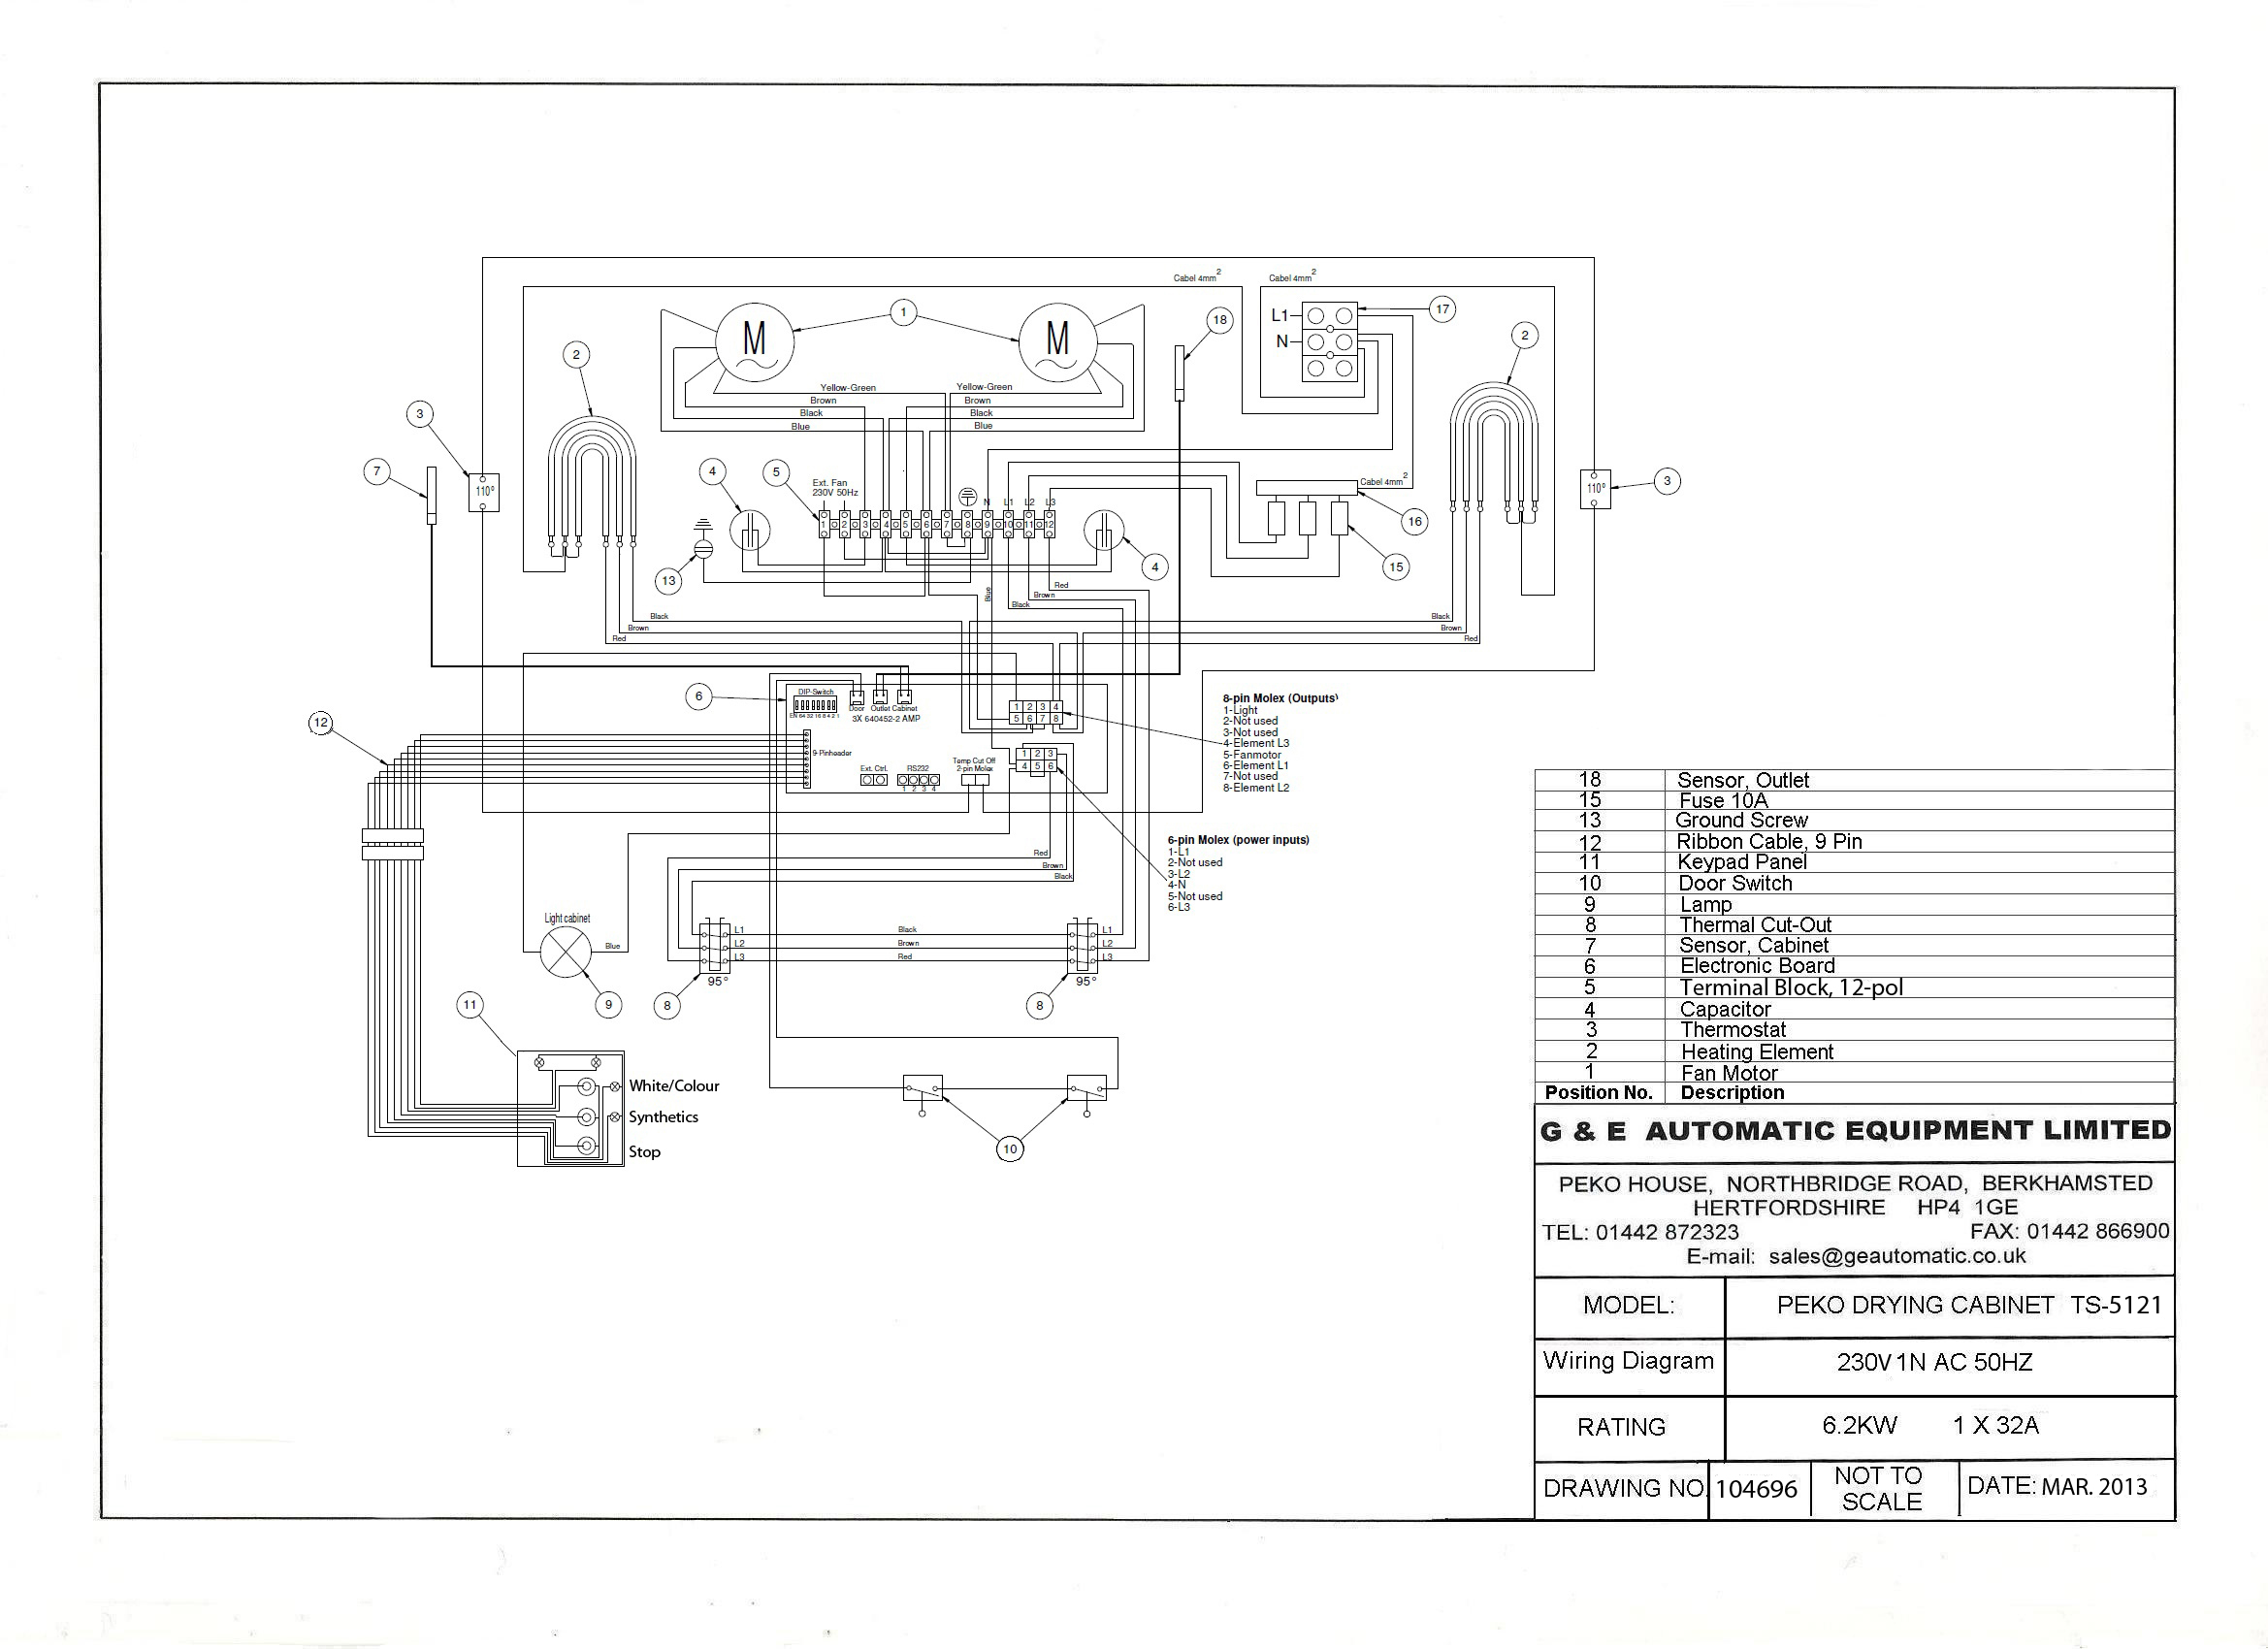 TS5121 wiring diagram 230v single phase1 wiring diagrams peko drying cabinets Basic Electrical Wiring Diagrams at edmiracle.co